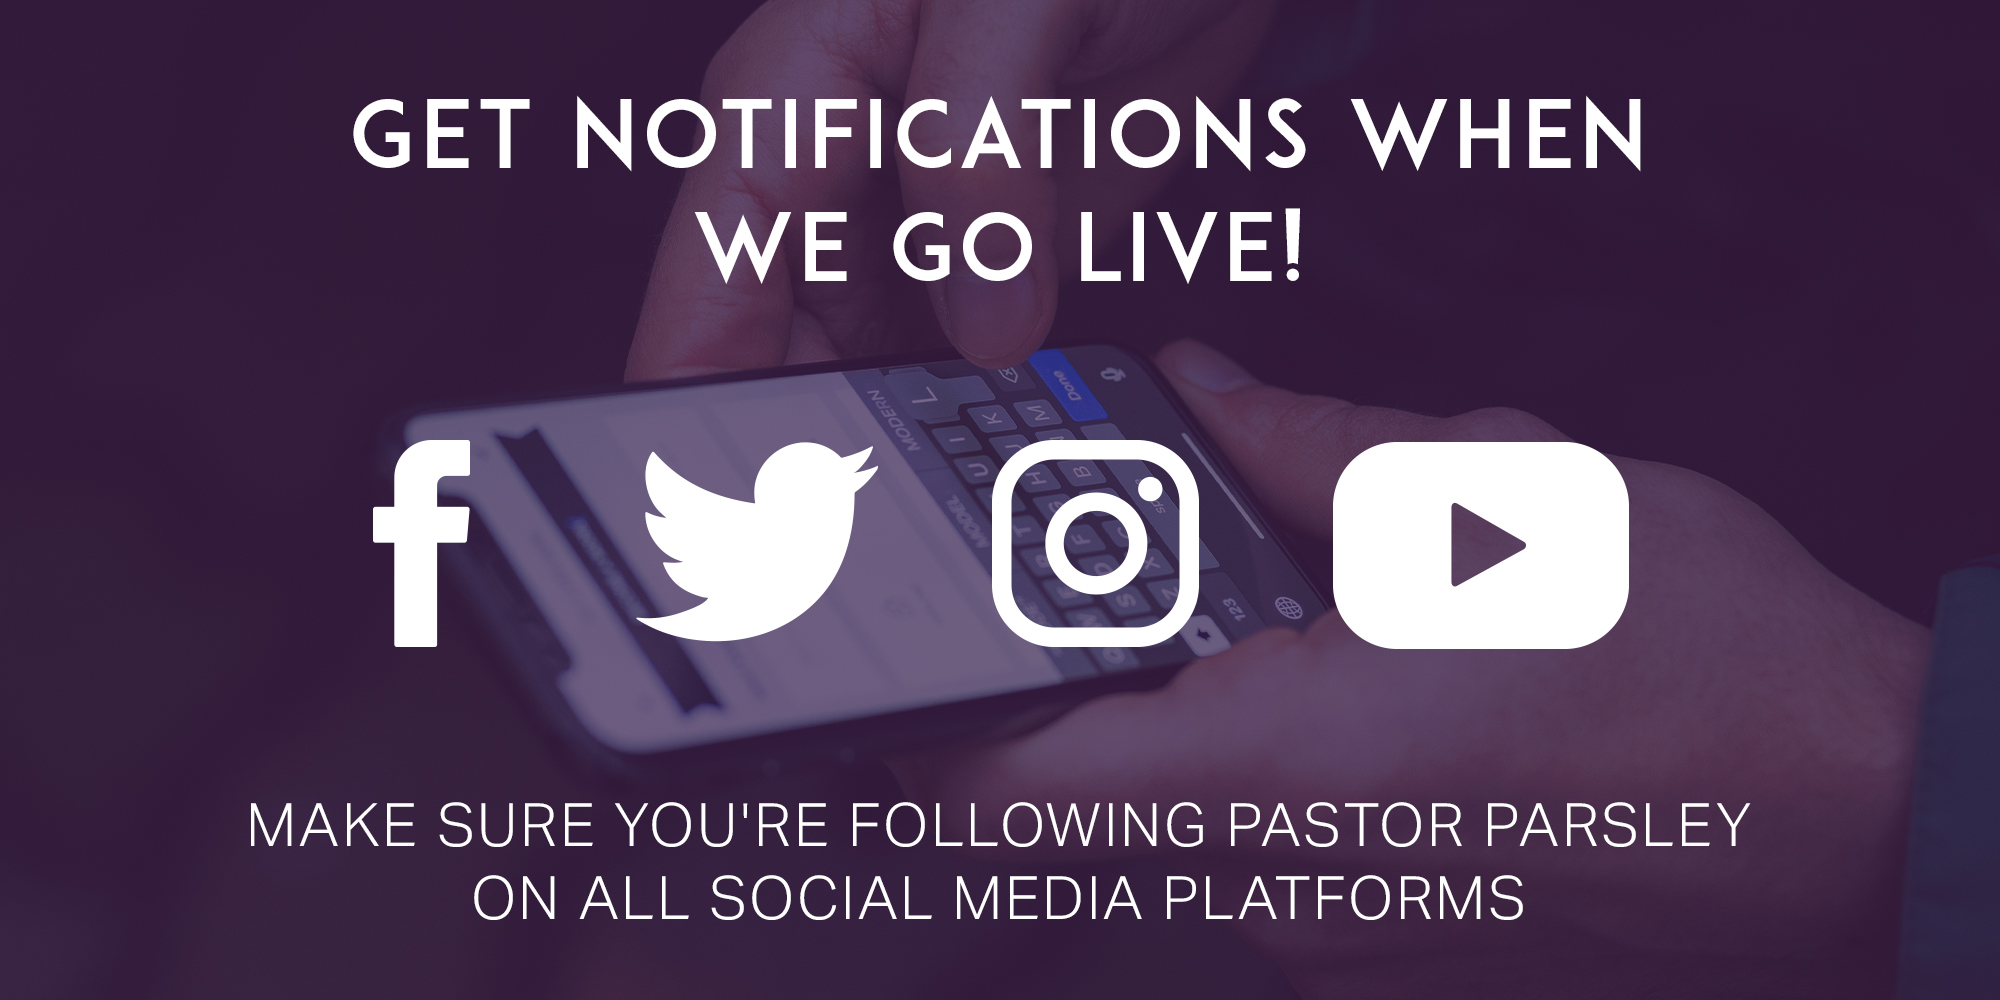 Get Notifications When We Go Live! Facebook Twitter Instagram Youtube Make Sure You're Following Pastor Parsley on All Social Media Platforms